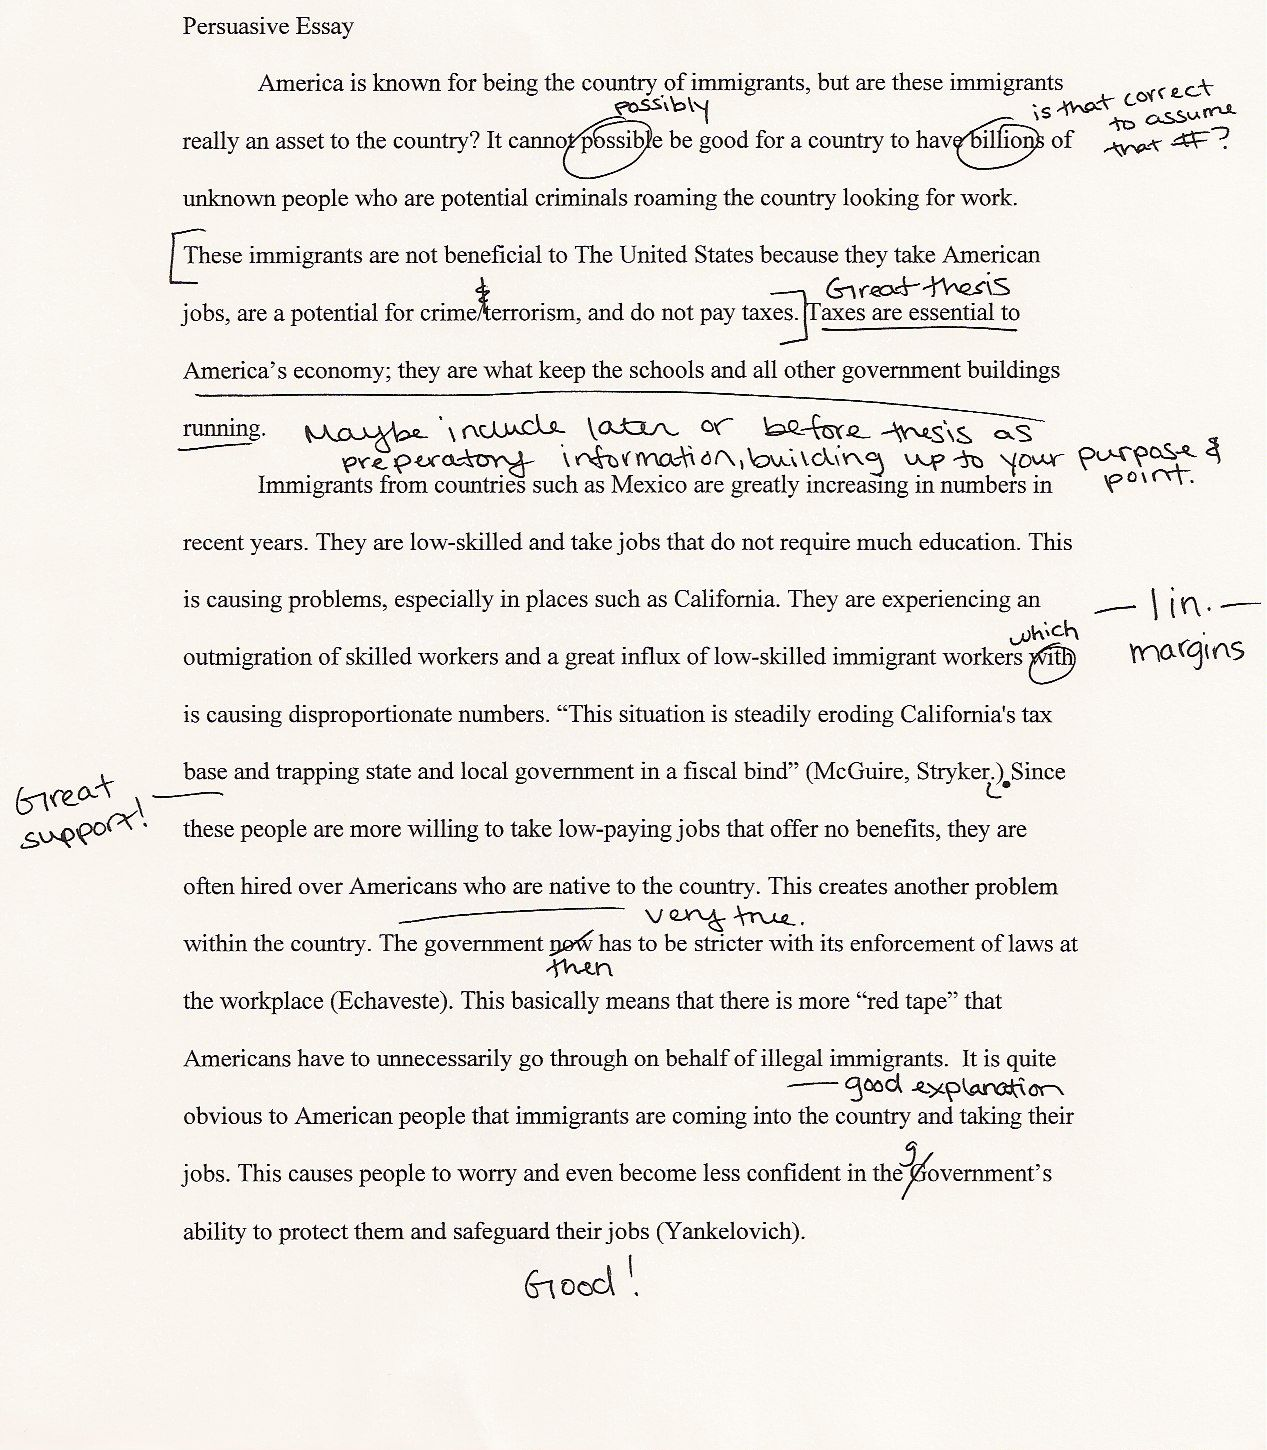 005 Research Paper Argumentative Topics Shocking College Level About Art Full